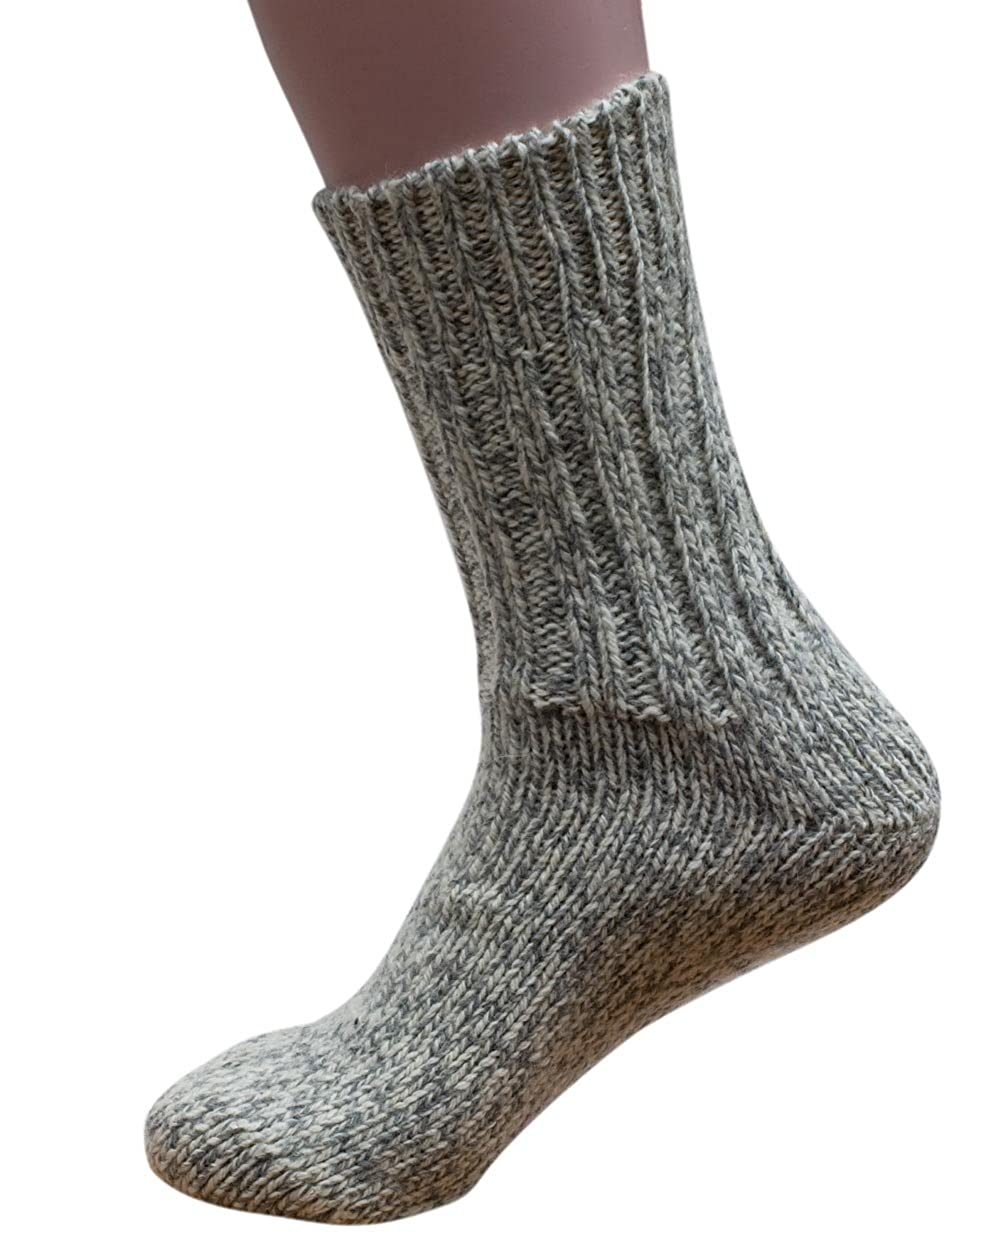 Hirsch Natur 100% Pure Wool Chunky Knit Ankle Sock